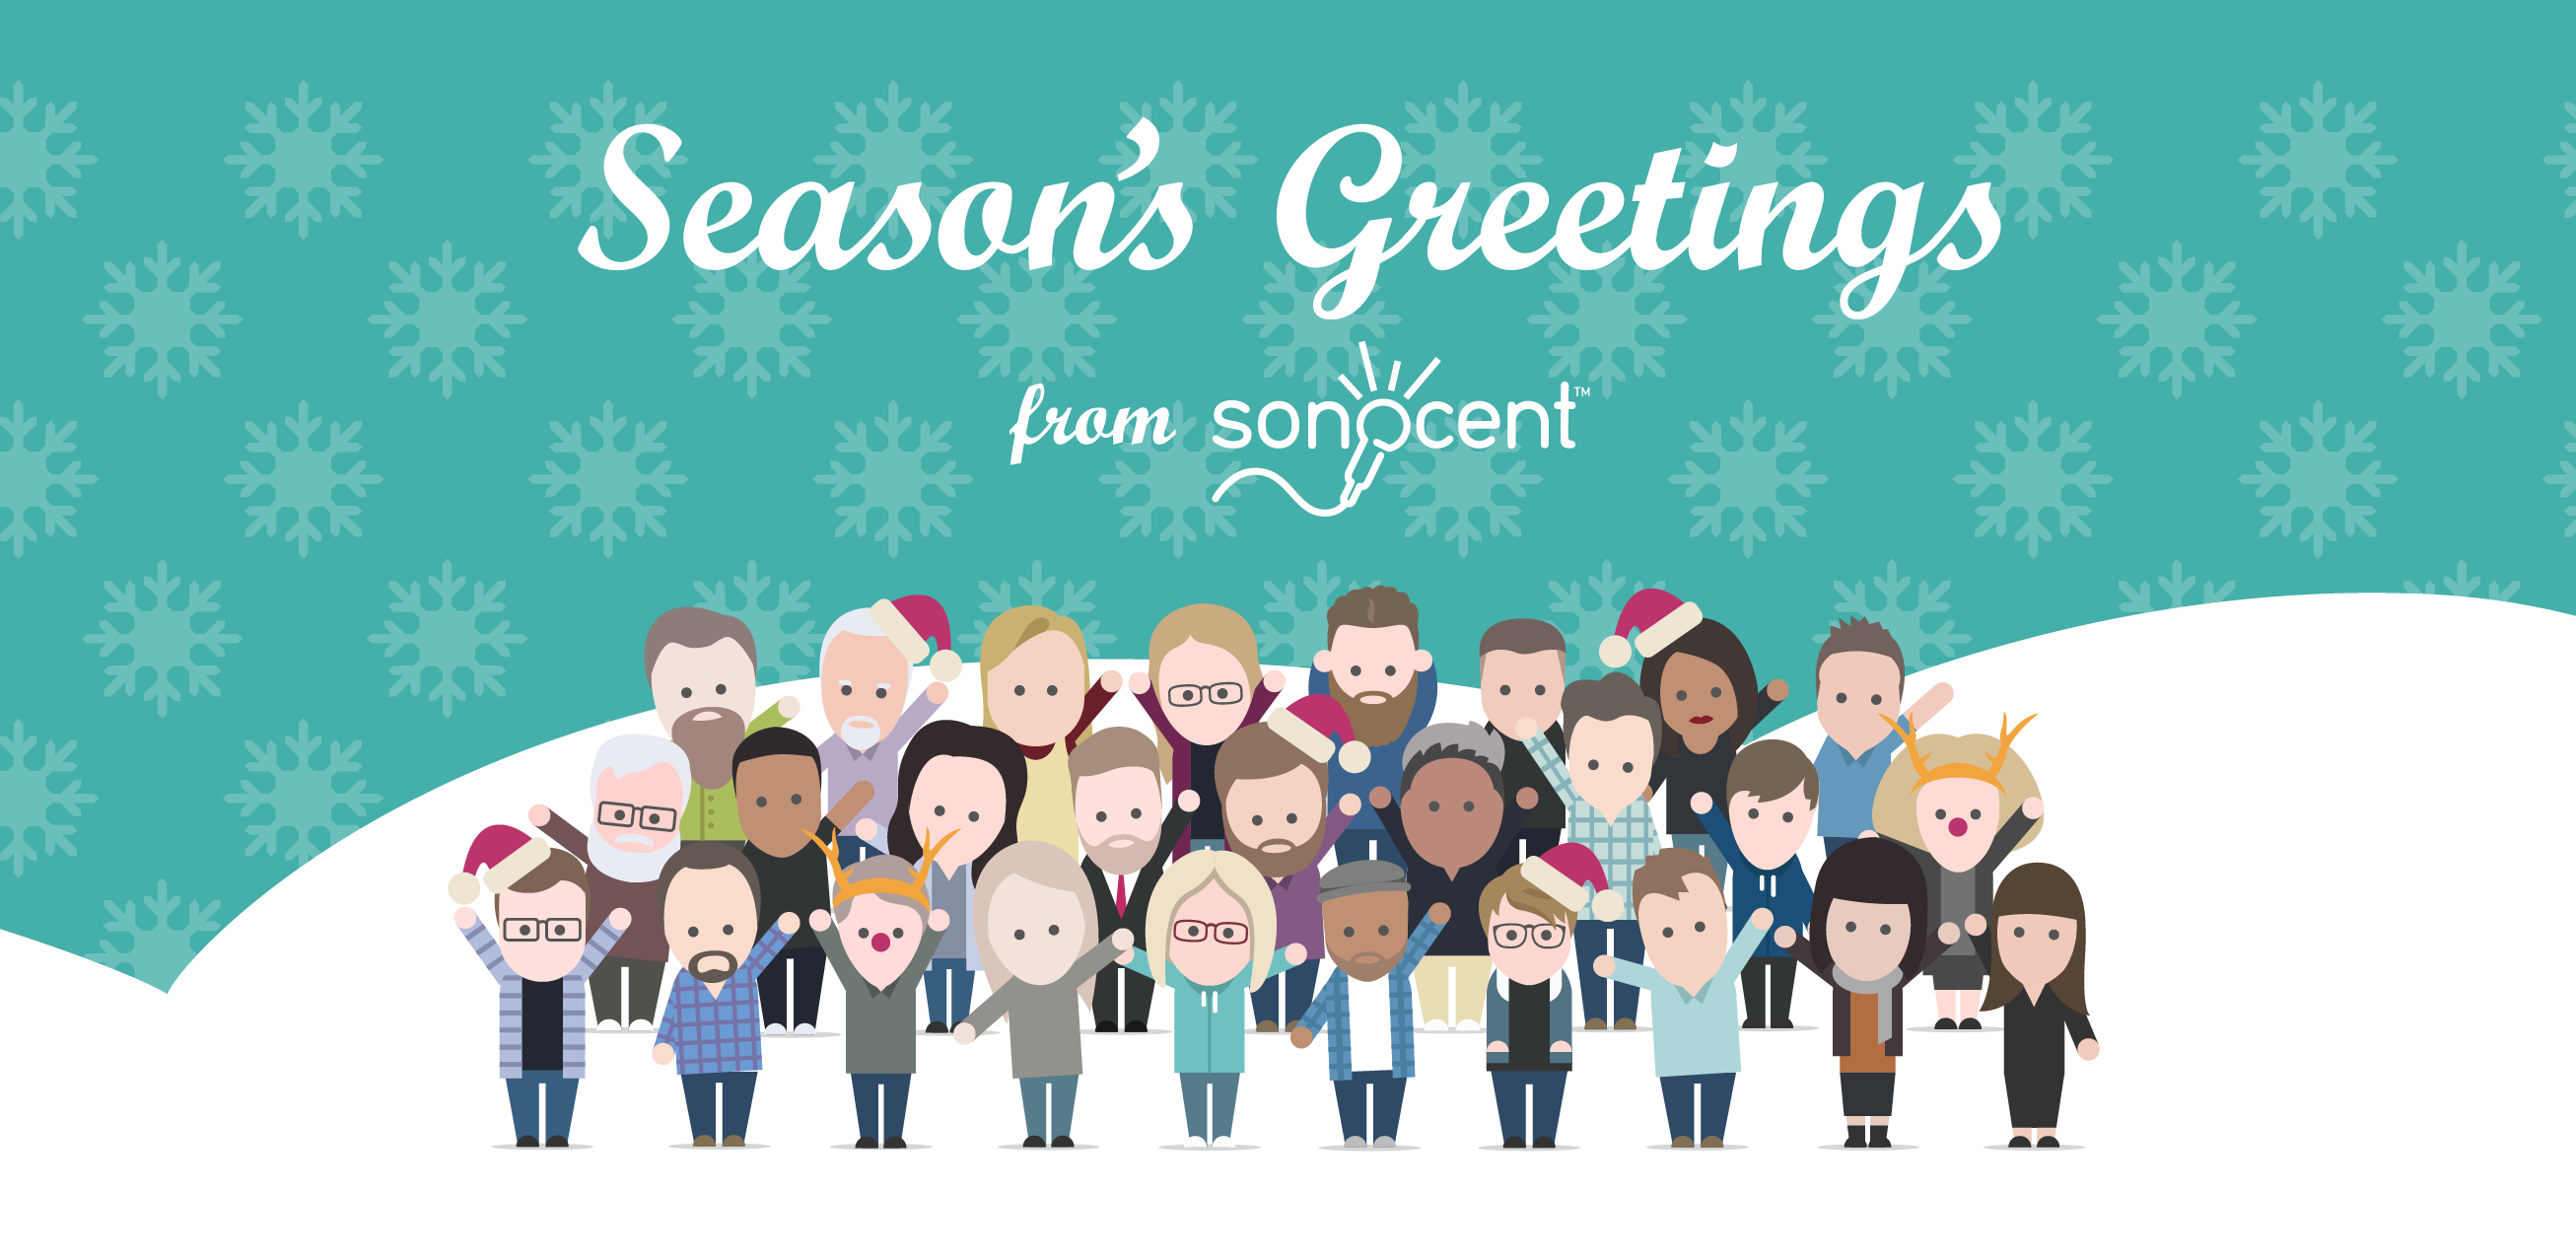 Season's Greetings from Sonocent